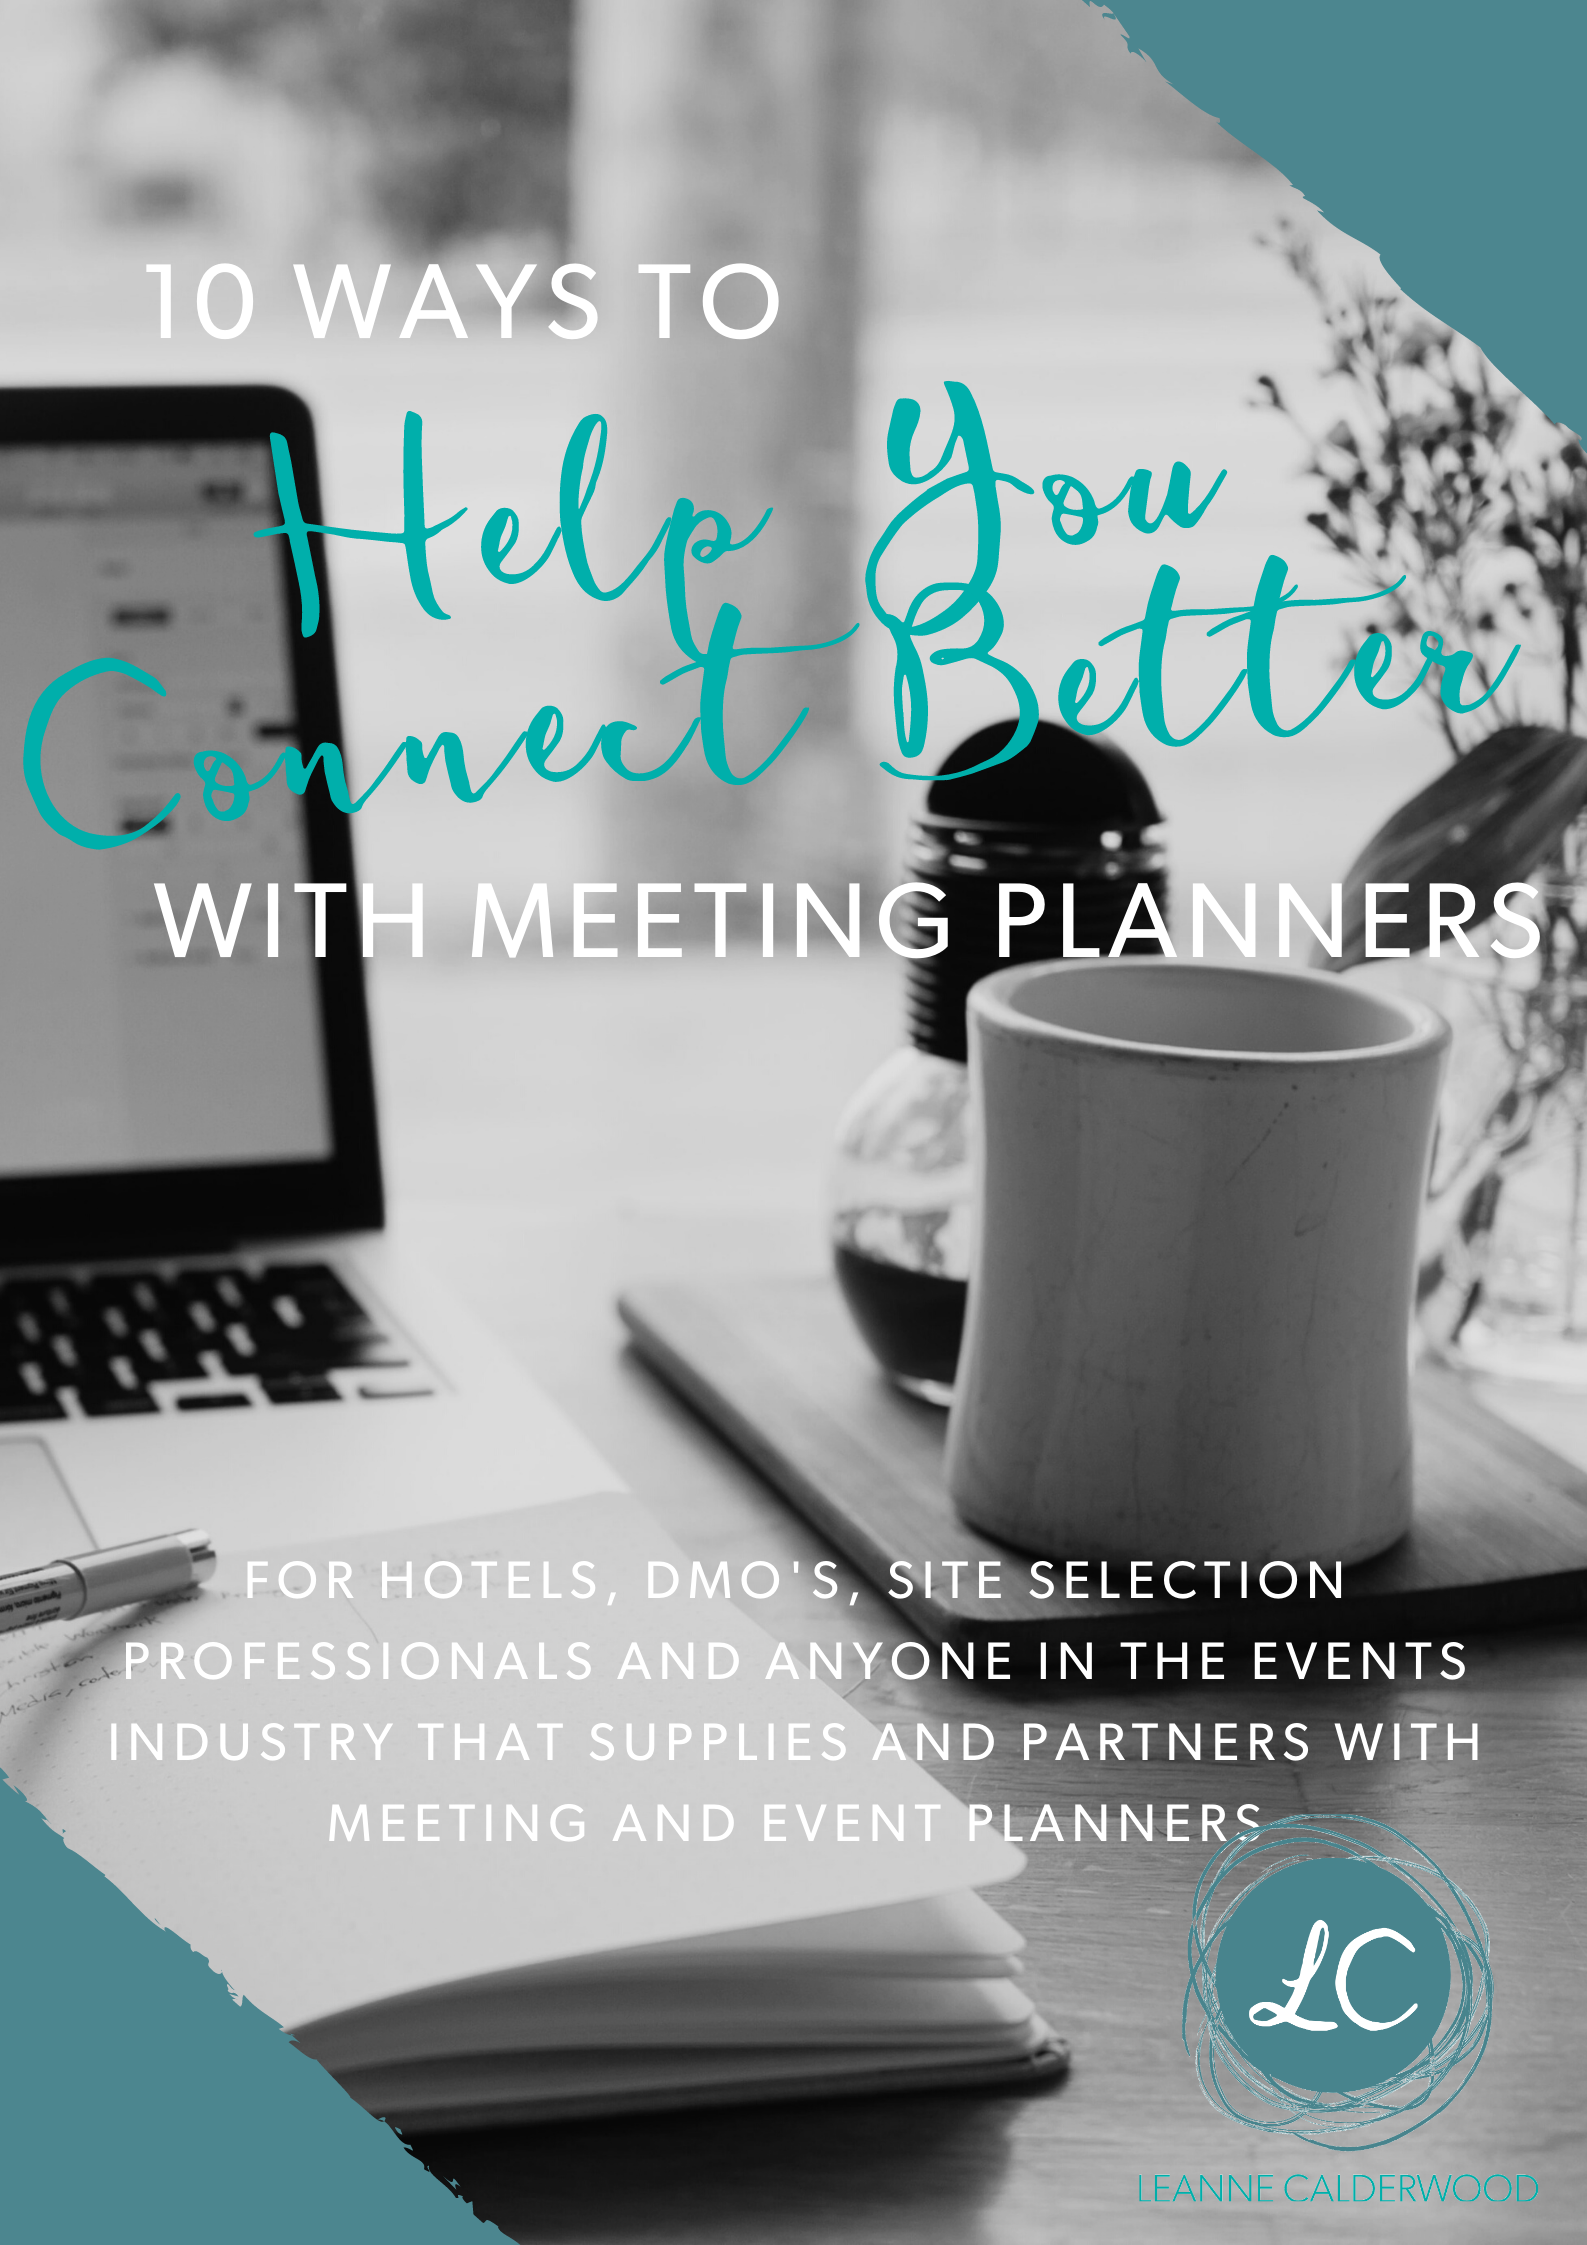 10 ways to connect better with meeting planners